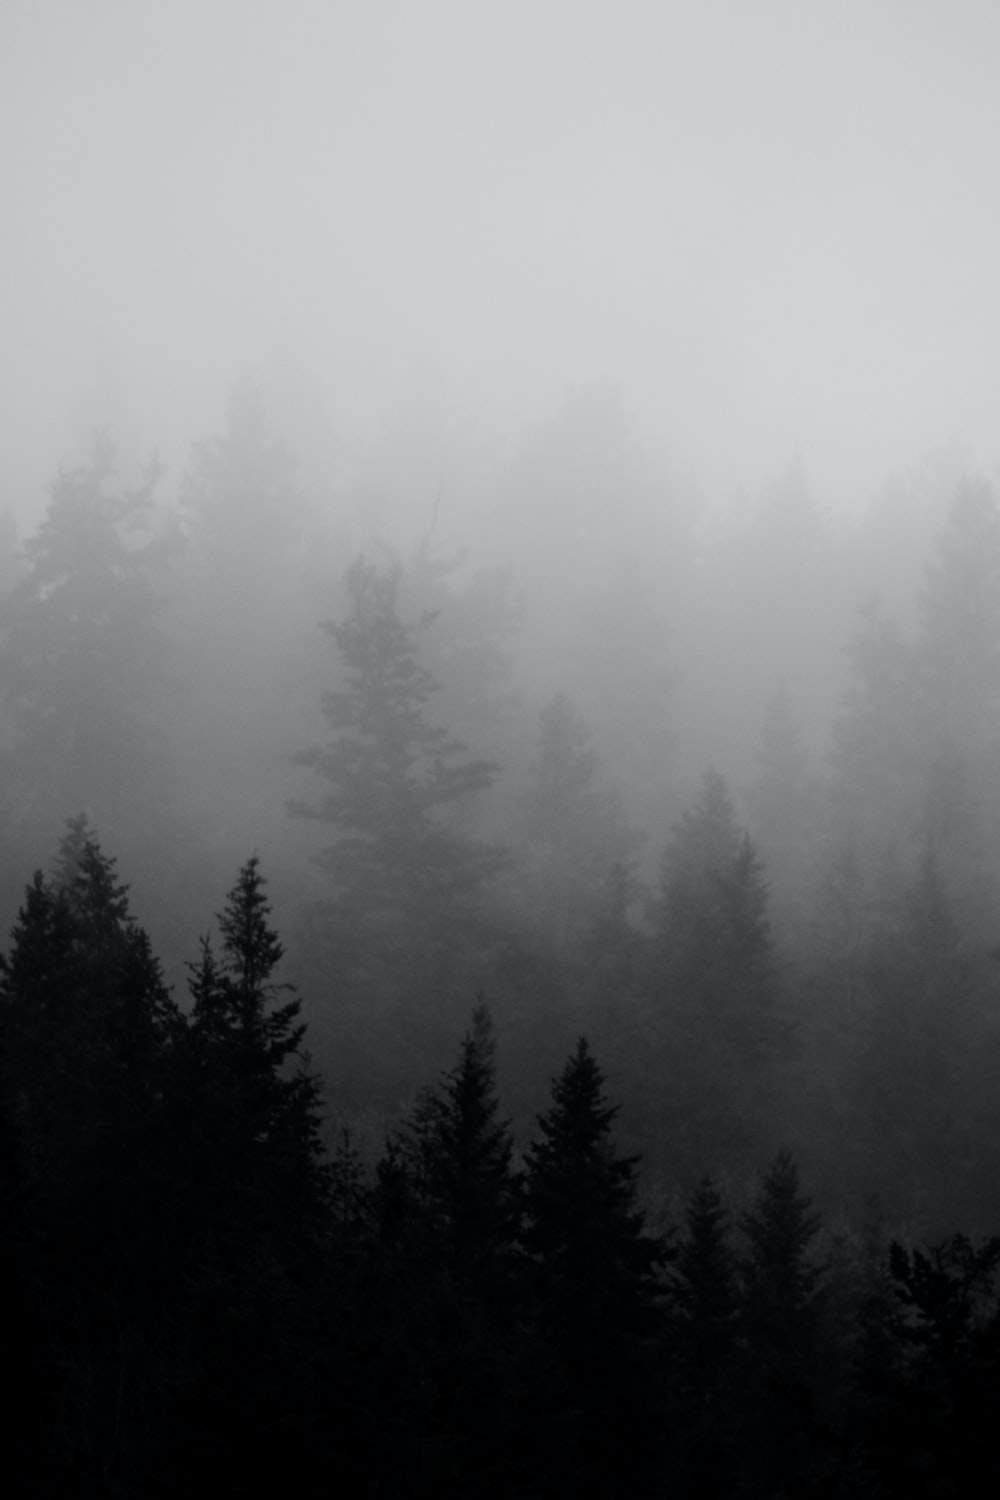 foggy pine tree forest